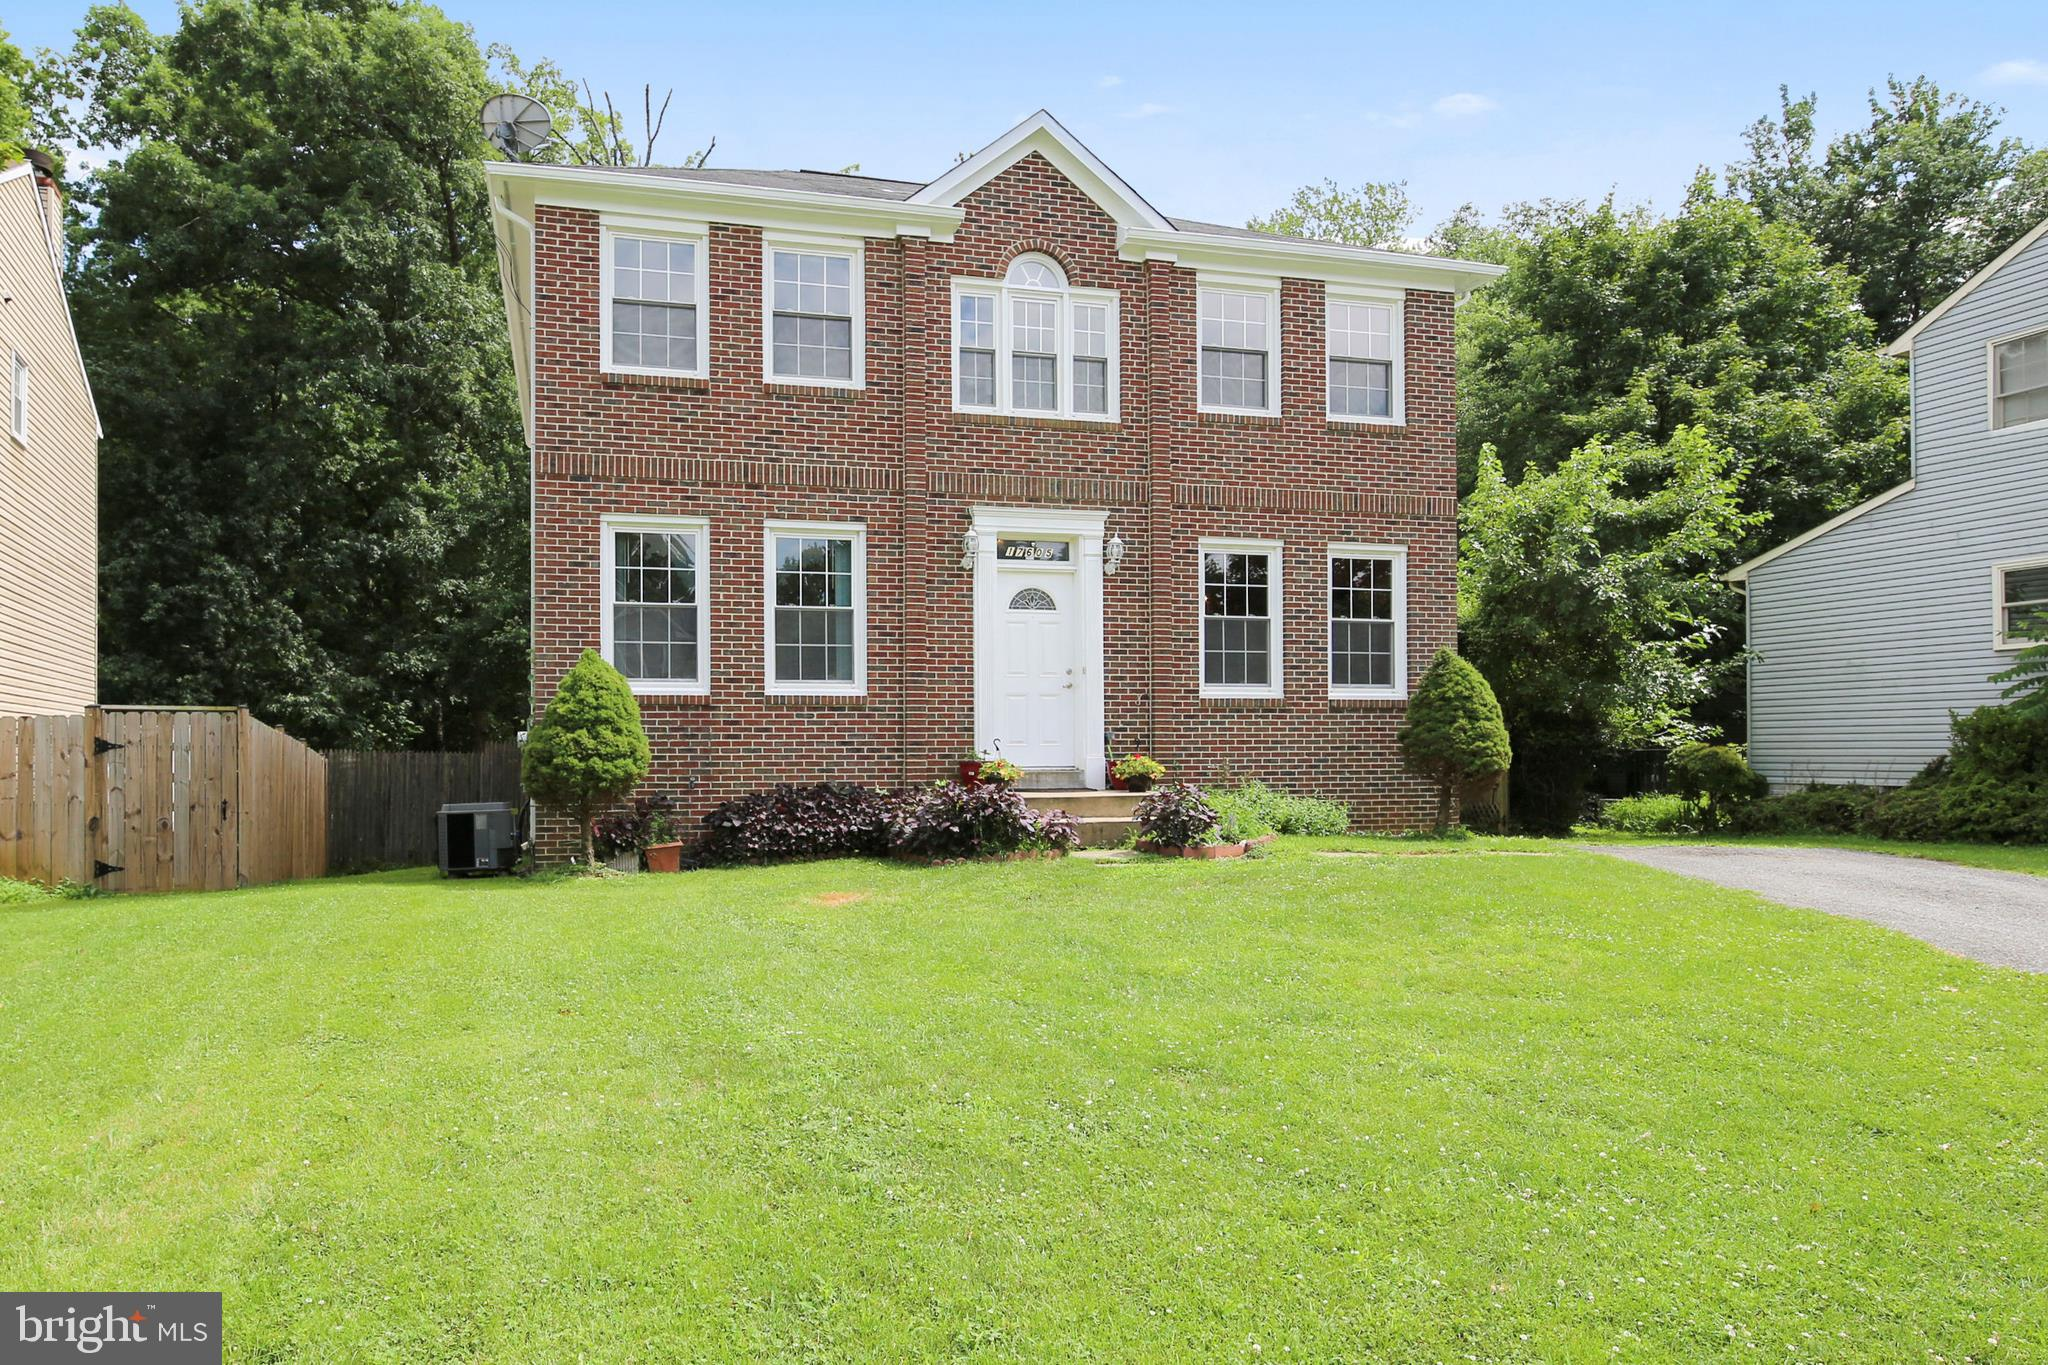 17605 SILVER DOLLAR COURT, GAITHERSBURG, MD 20877